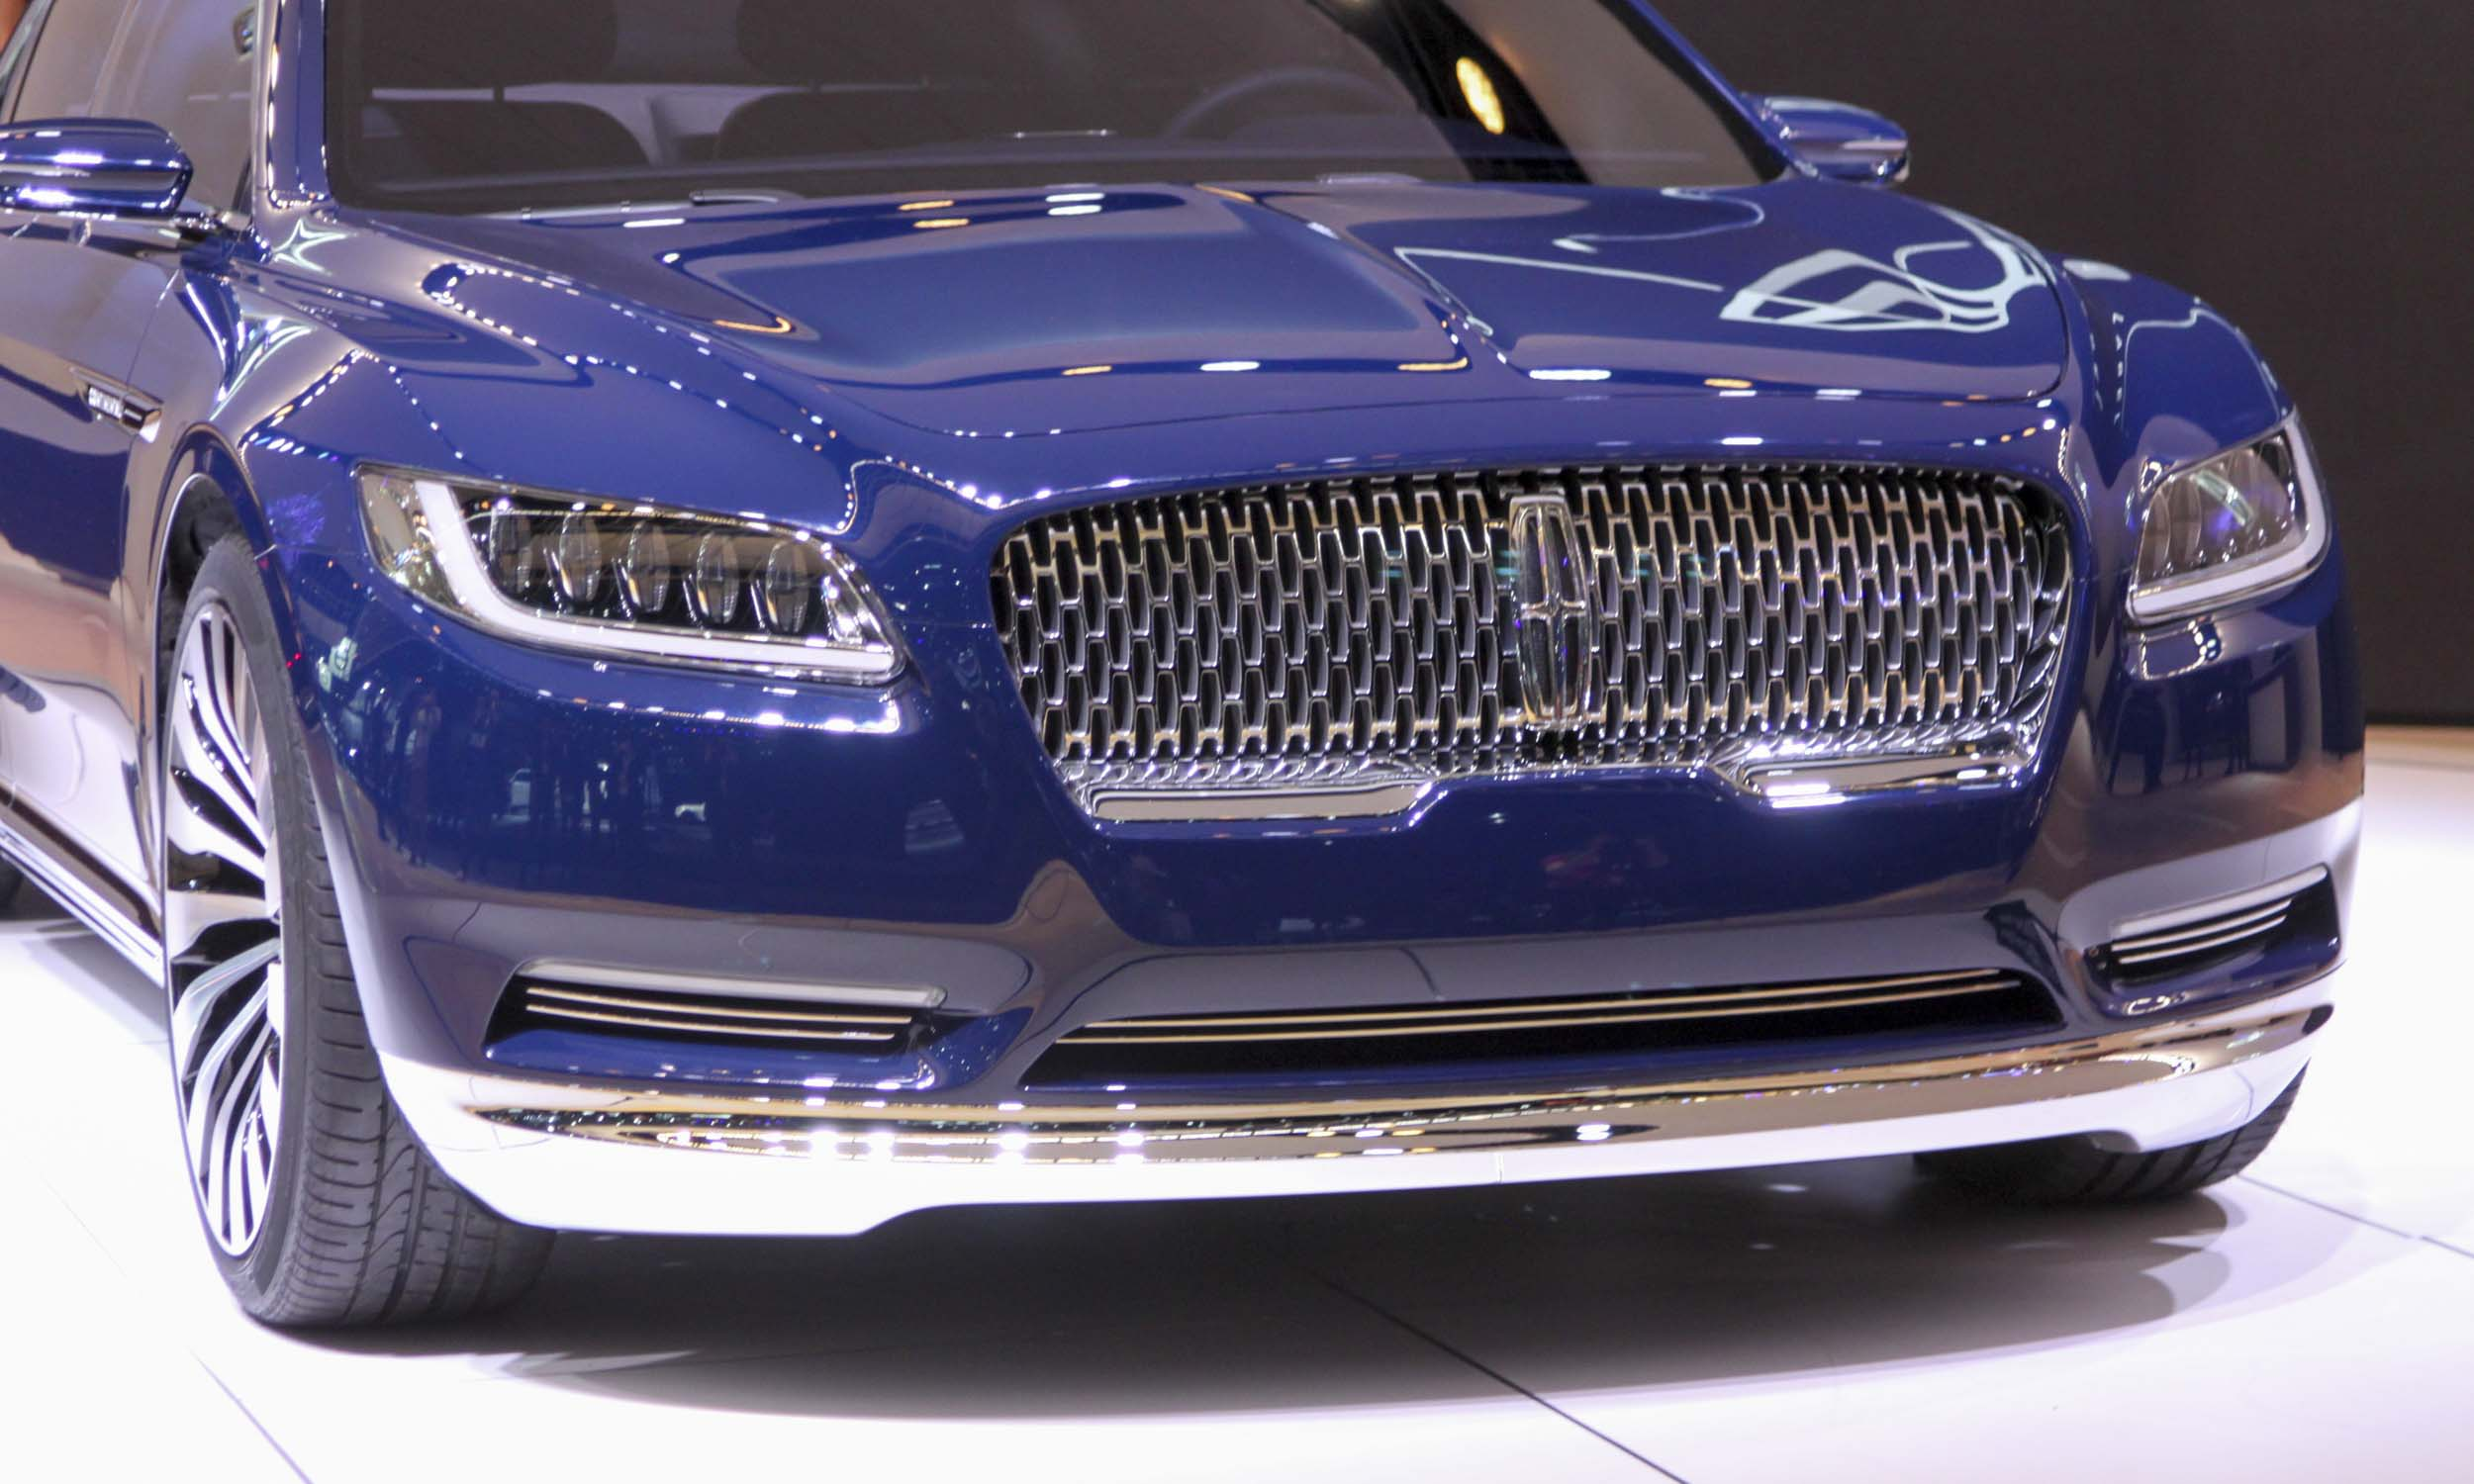 MoreNY72 Outstanding Lincoln Continental New York Auto Show Cars Trend